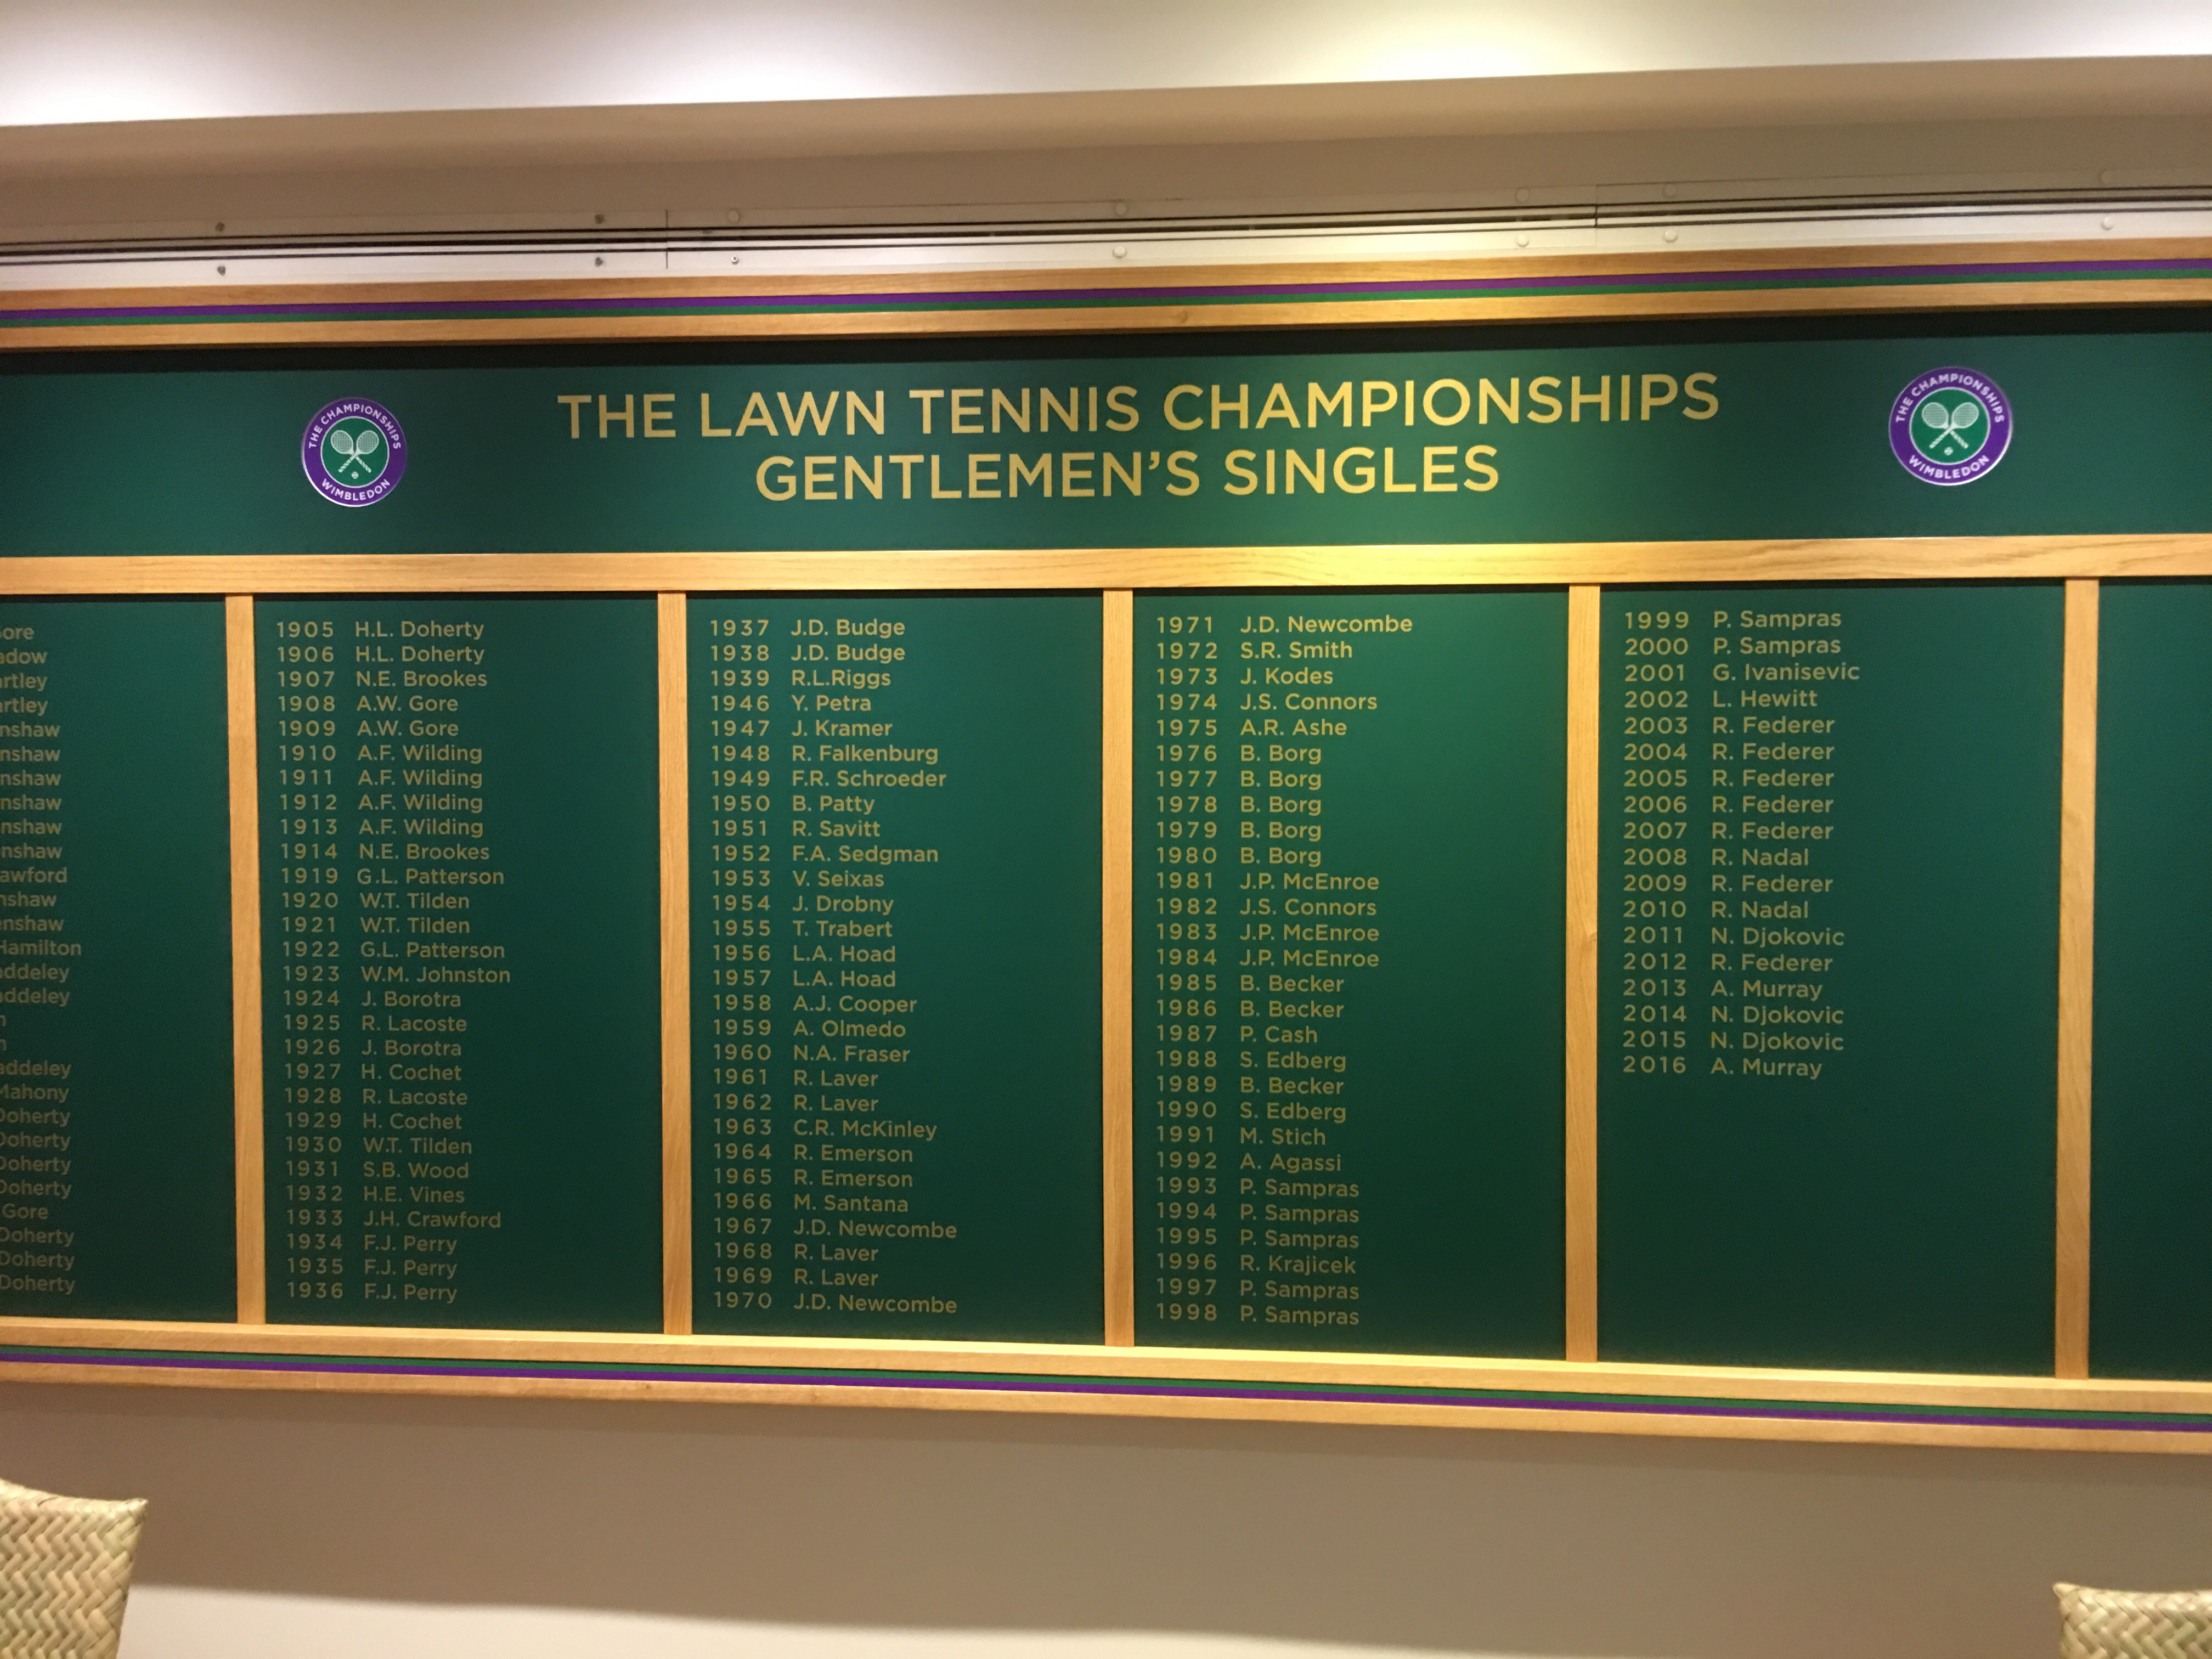 A Sport Business and Leadership visit to Wimbledon